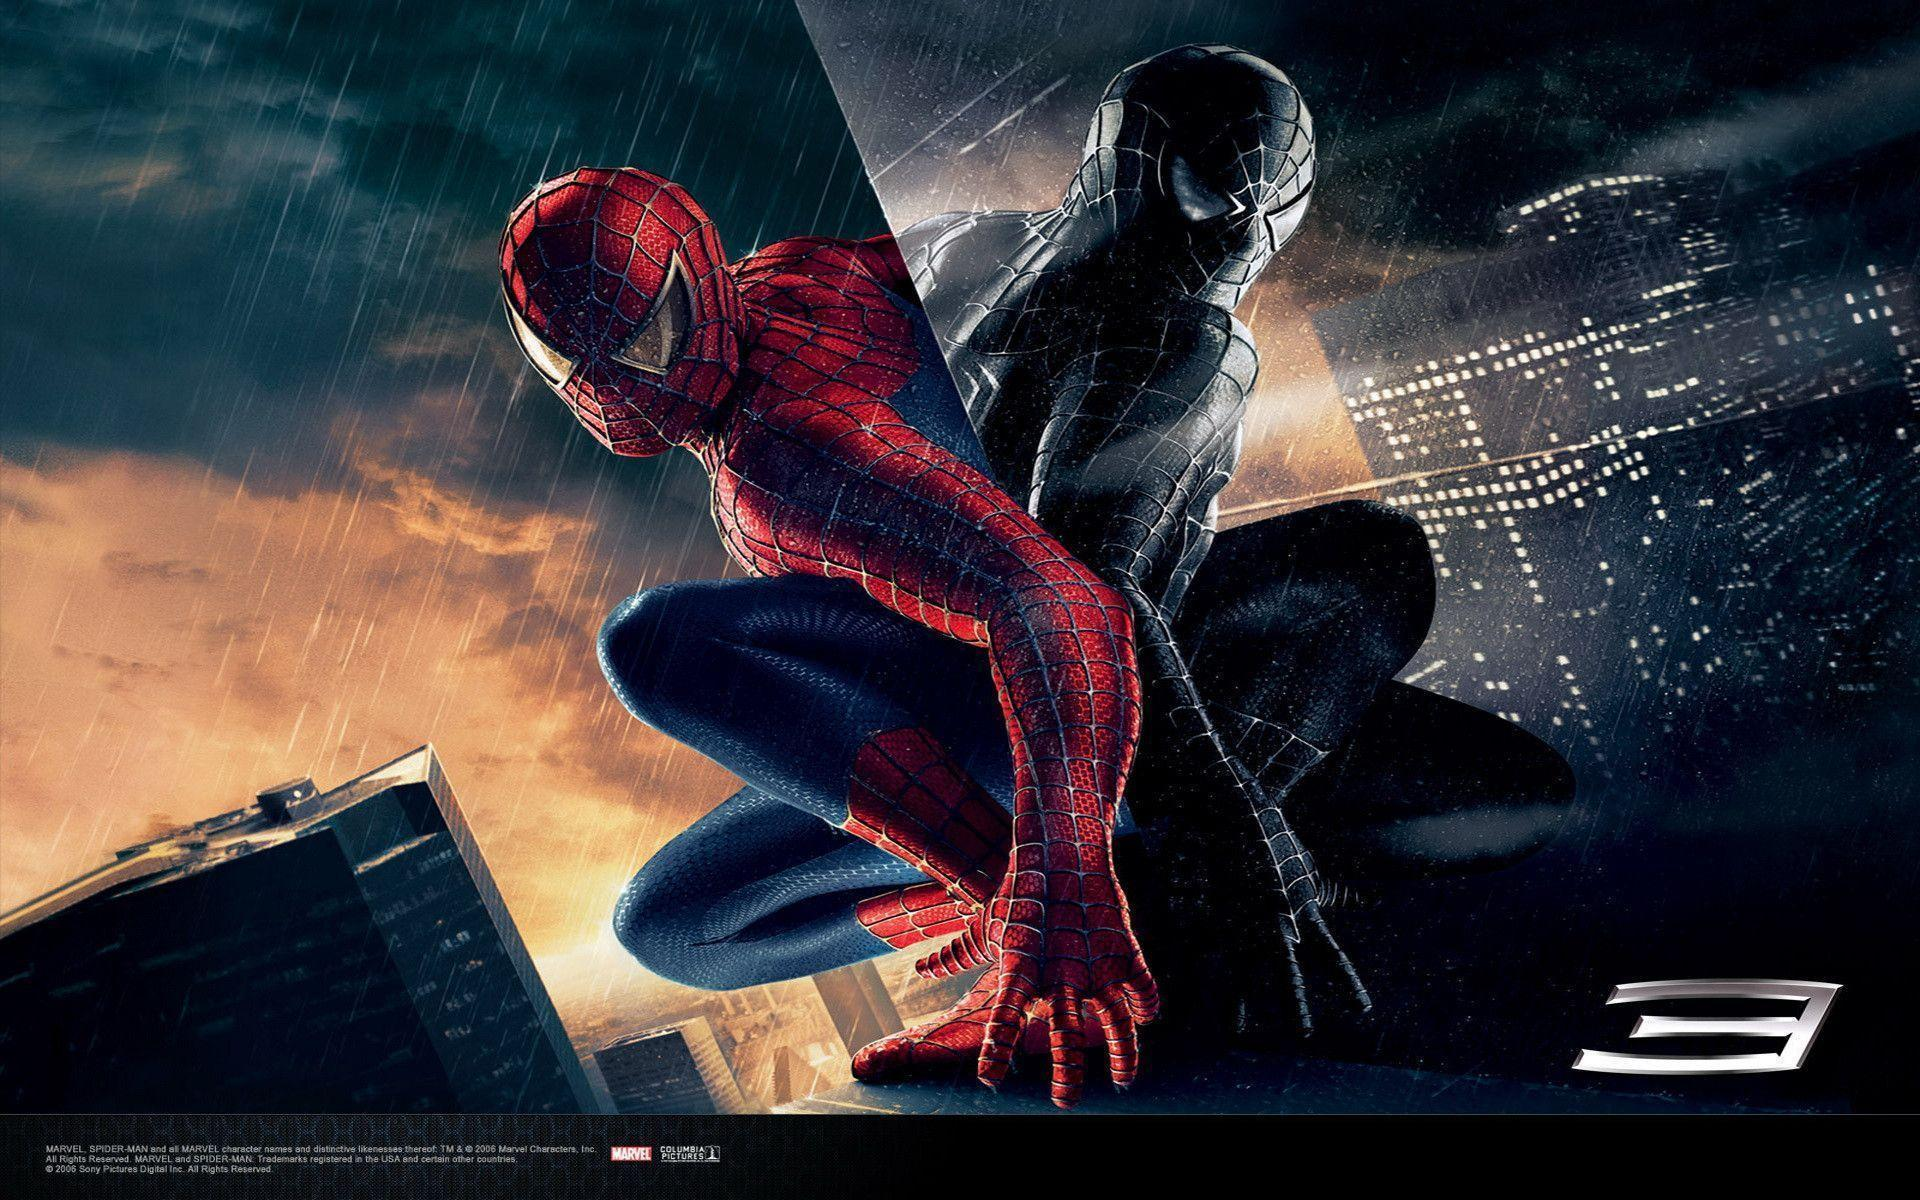 Spider-Man 3 Wallpapers - Wallpaper Cave